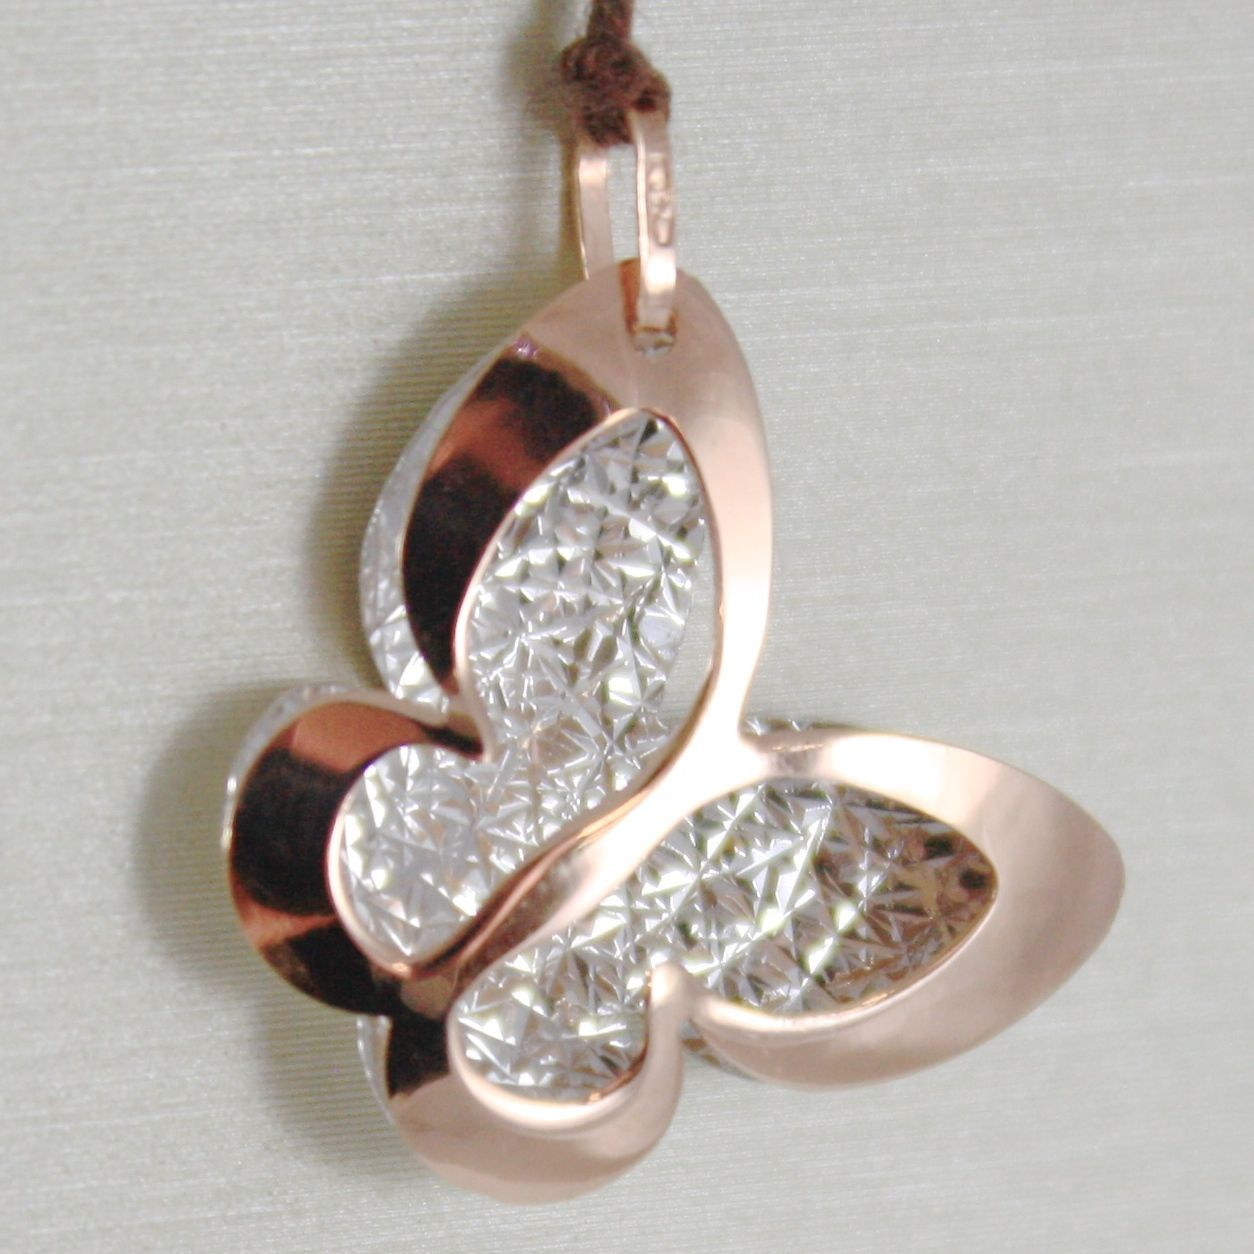 18K ROSE & WHITE GOLD BUTTERFLY PENDANT, CHARMS, FINELY WORKED, MADE IN ITALY